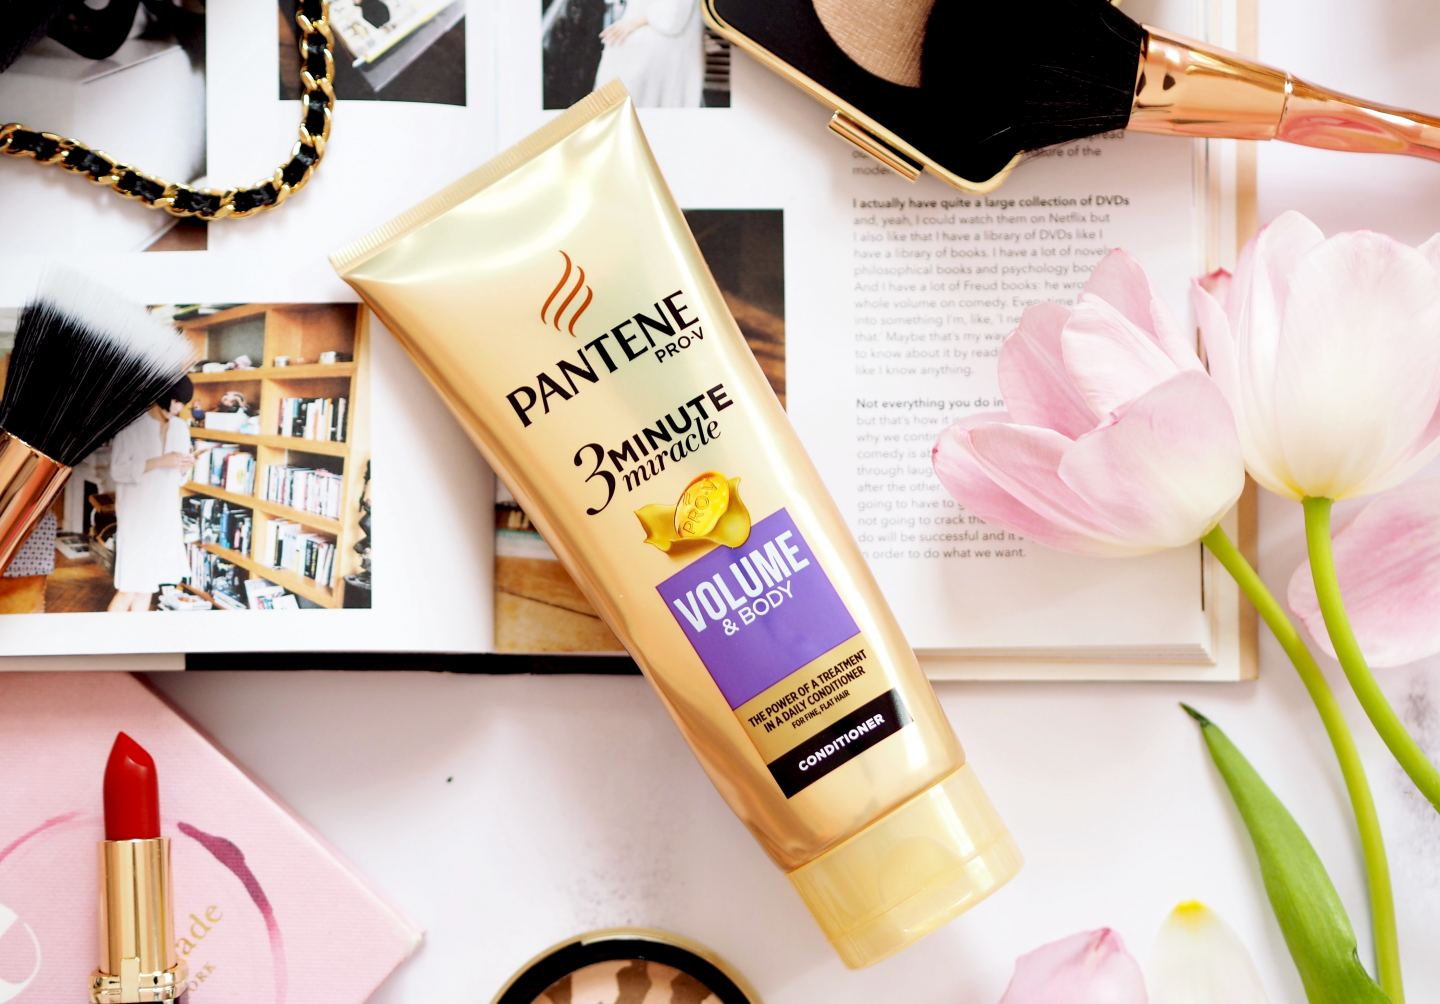 New Pantene Pro-V 3 Minute Miracle Range